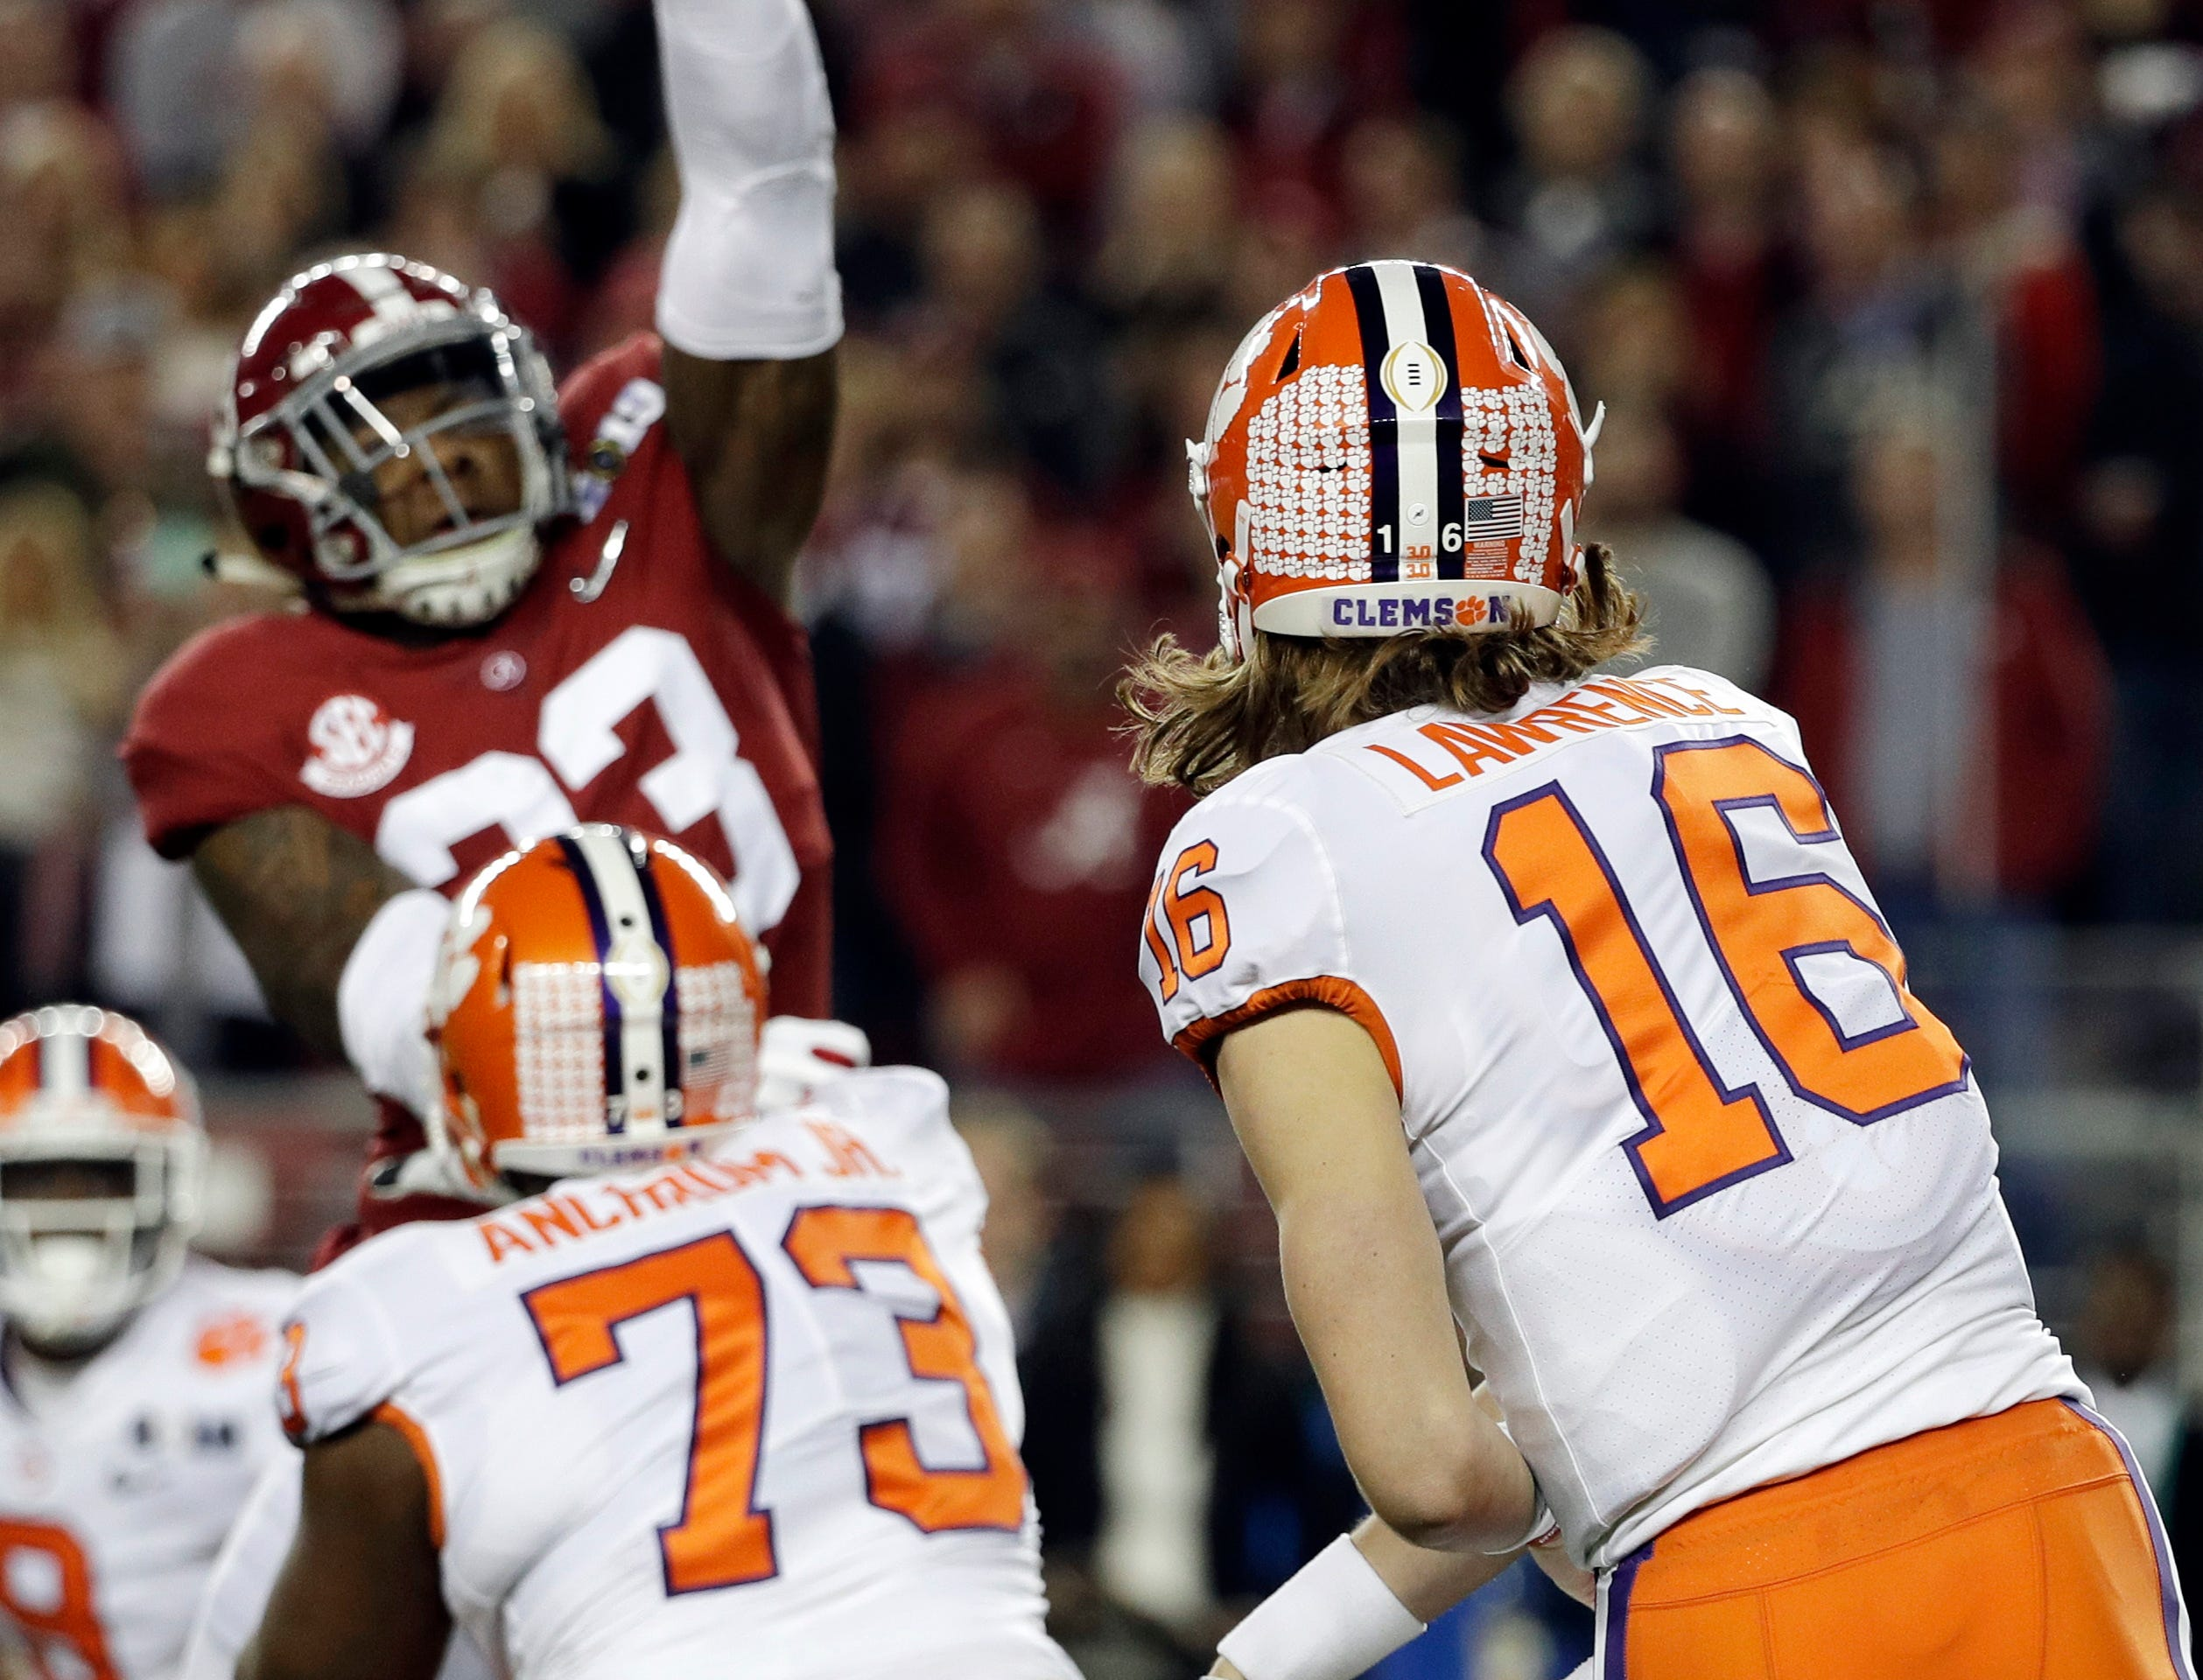 Alabama's Anfernee Jennings knocks down a pass by Clemson's Trevor Lawrence during the first half the NCAA college football playoff championship game, Monday, Jan. 7, 2019, in Santa Clara, Calif. (AP Photo/David J. Phillip)